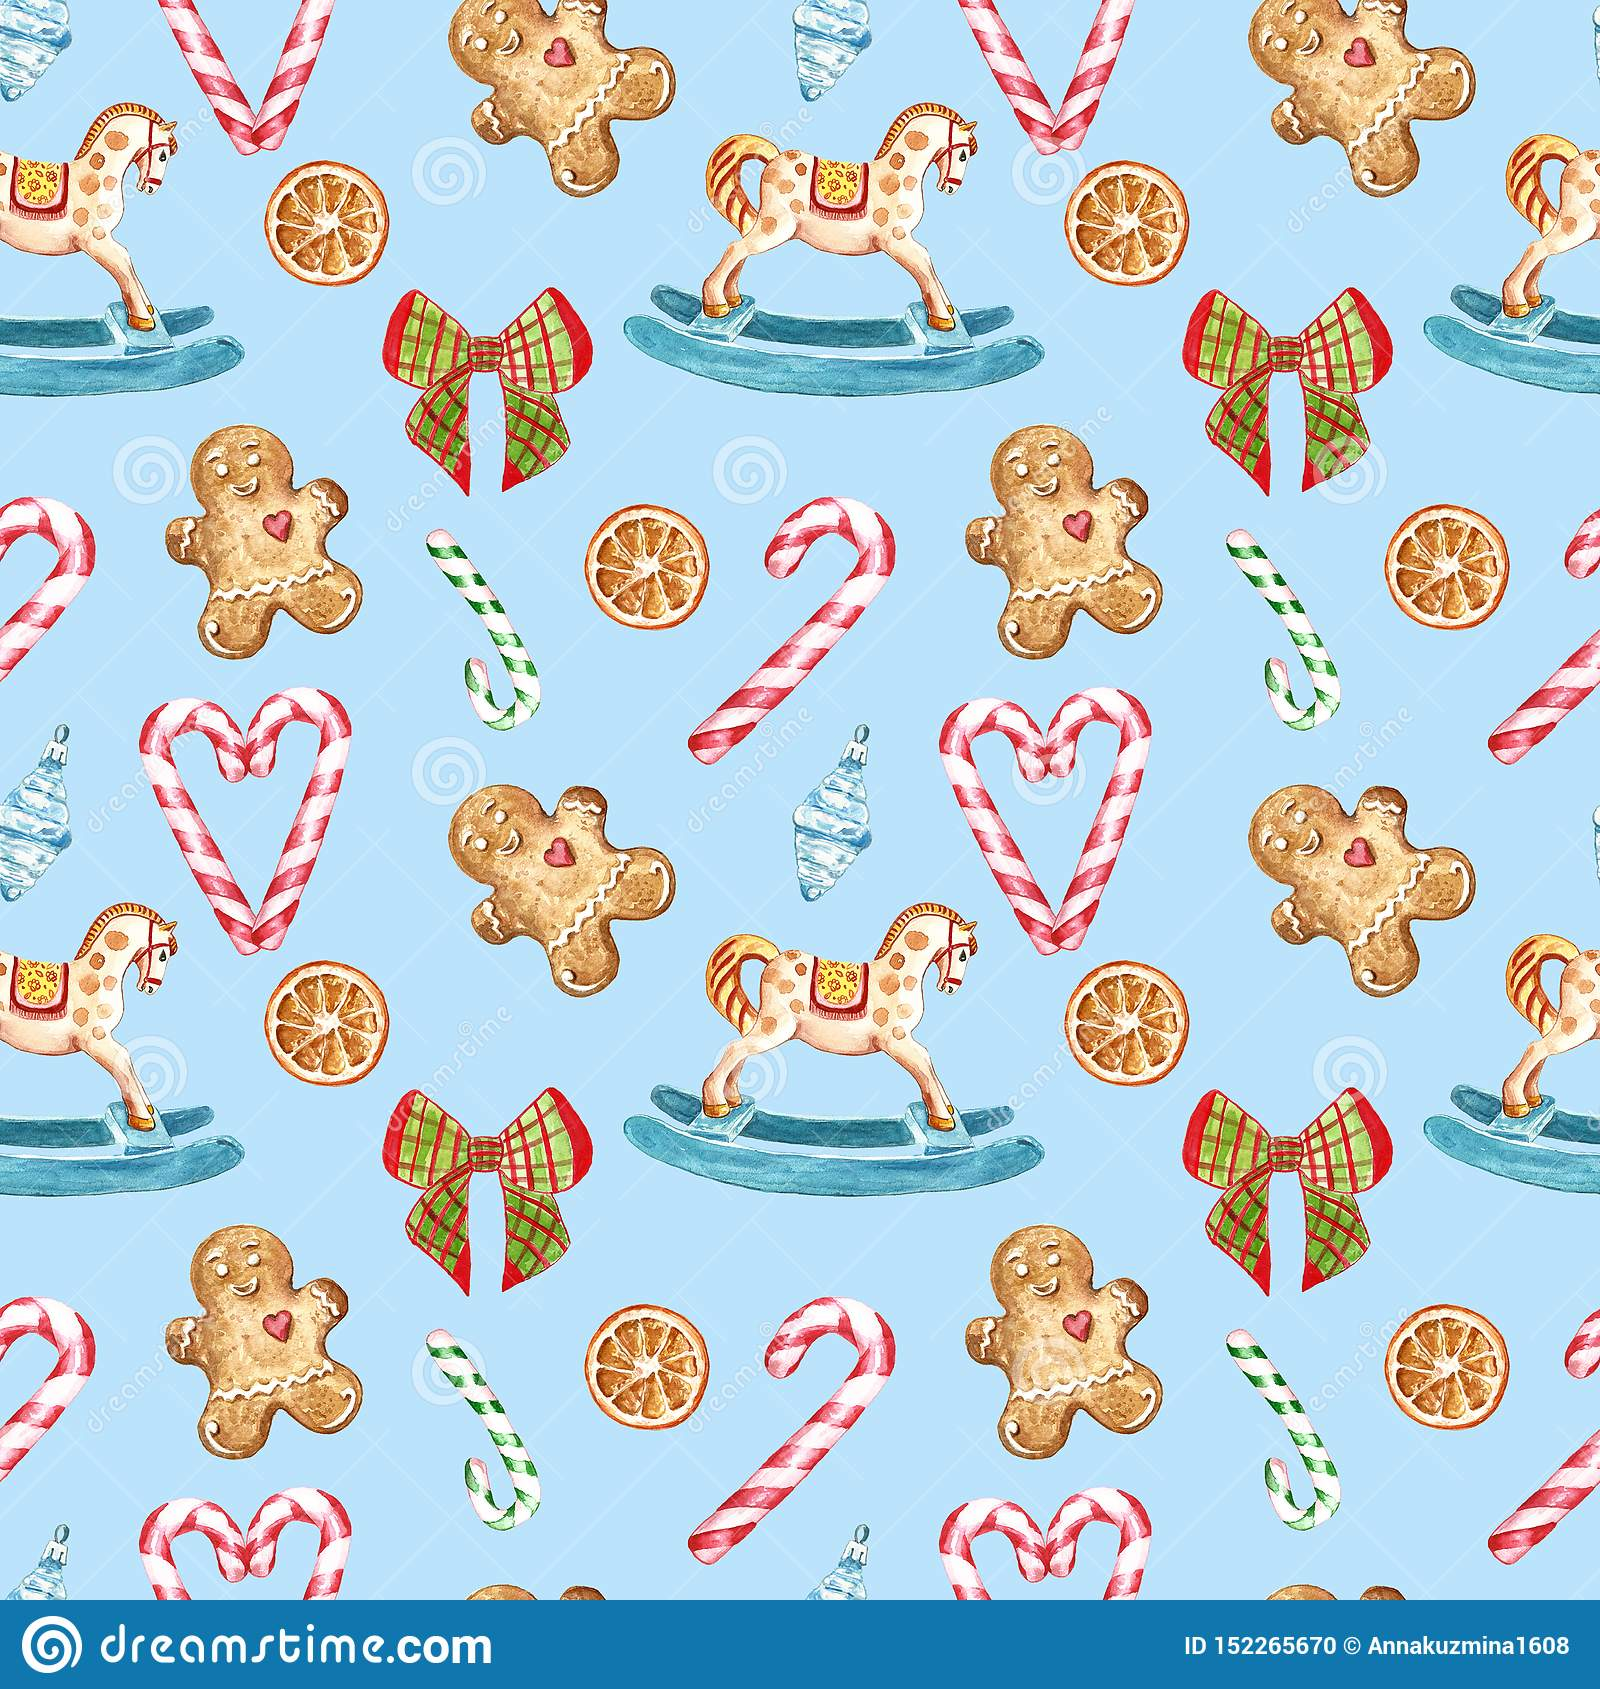 Watercolor Christmas Seamless Pattern With Candy Canes Rocking Horse Ornament Tree Decor Ribbon Gingerbread Cookies On Blue Stock Illustration Illustration Of Merry Candy 152265670